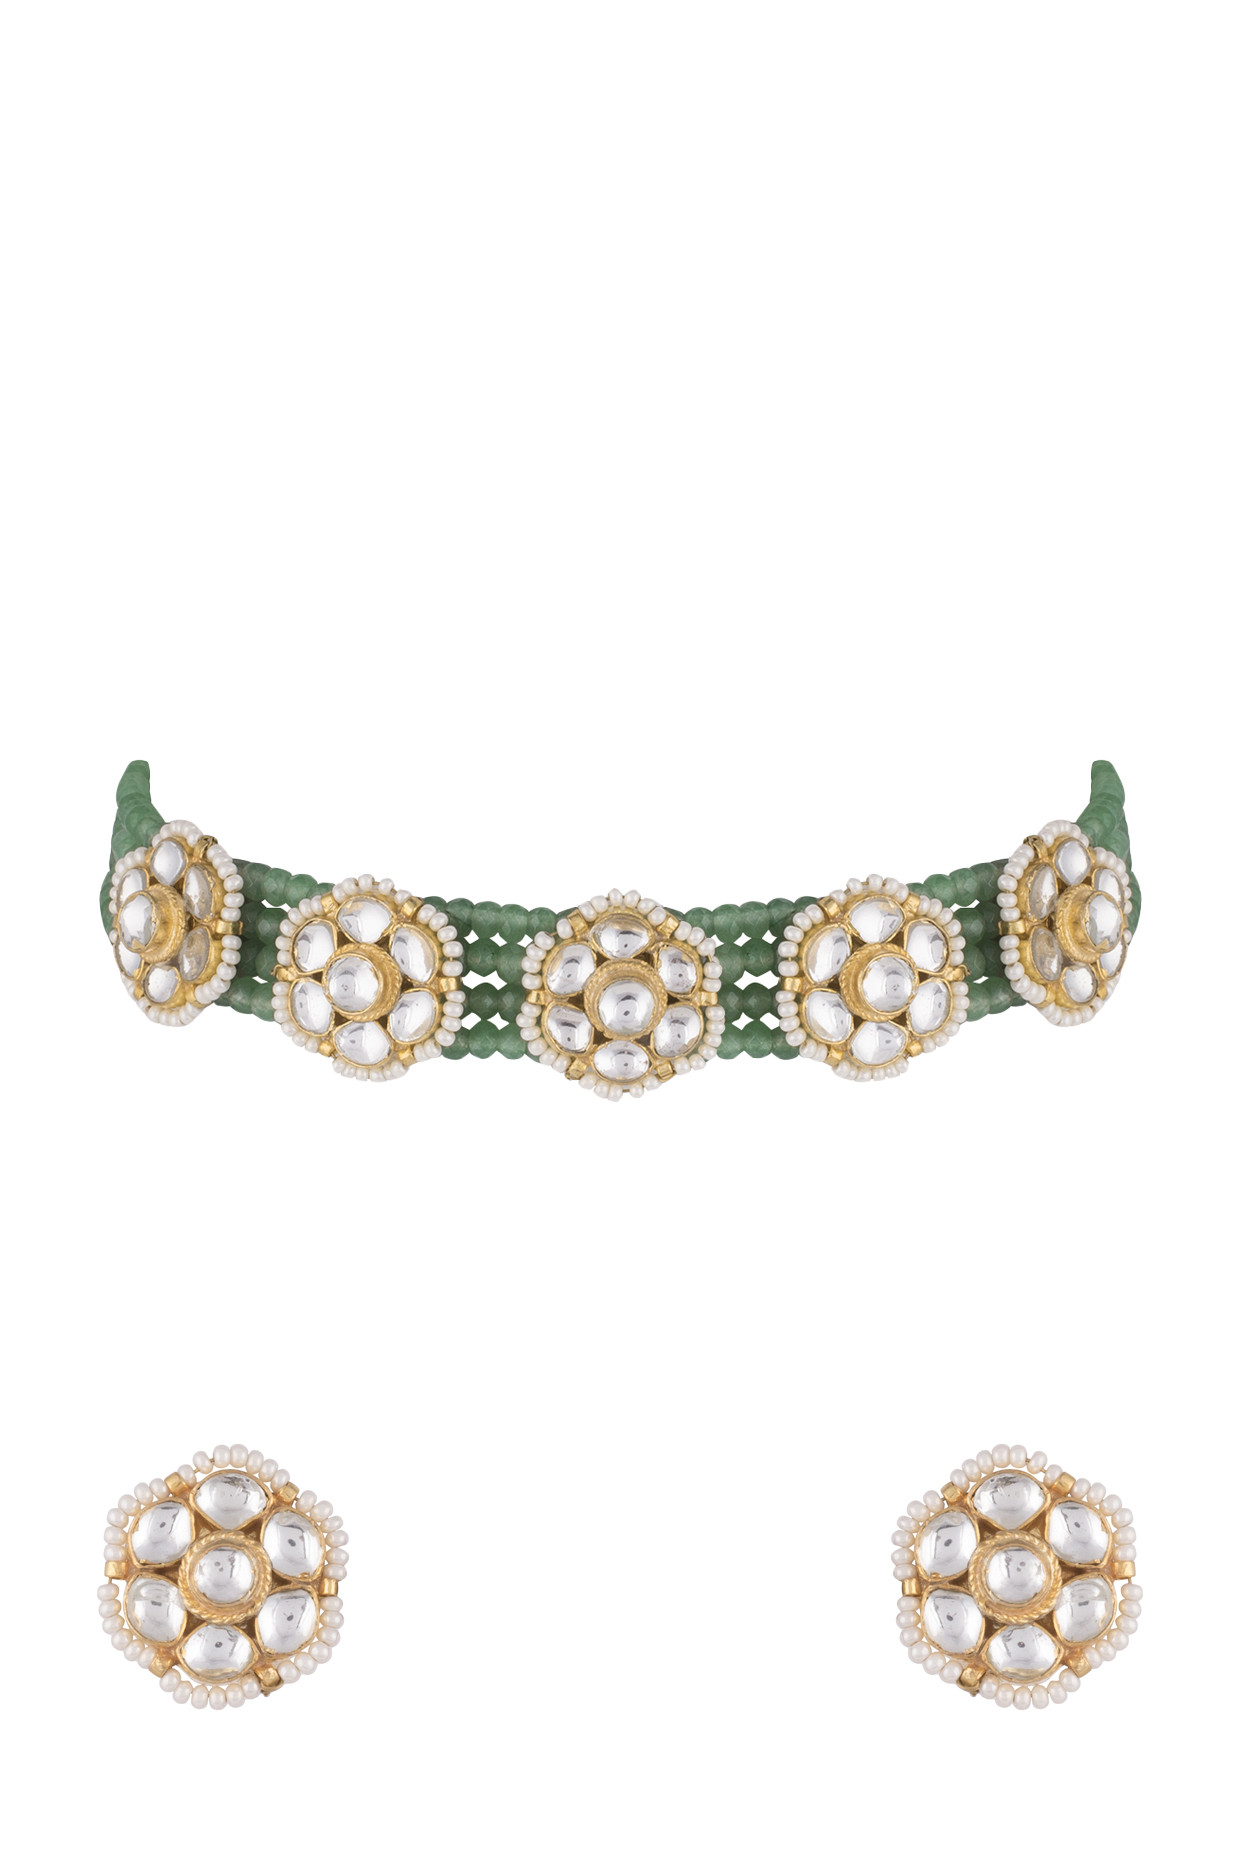 Gold Finish Faux Pearls, Kundan & Green Bead Choker Necklace Set by Aster